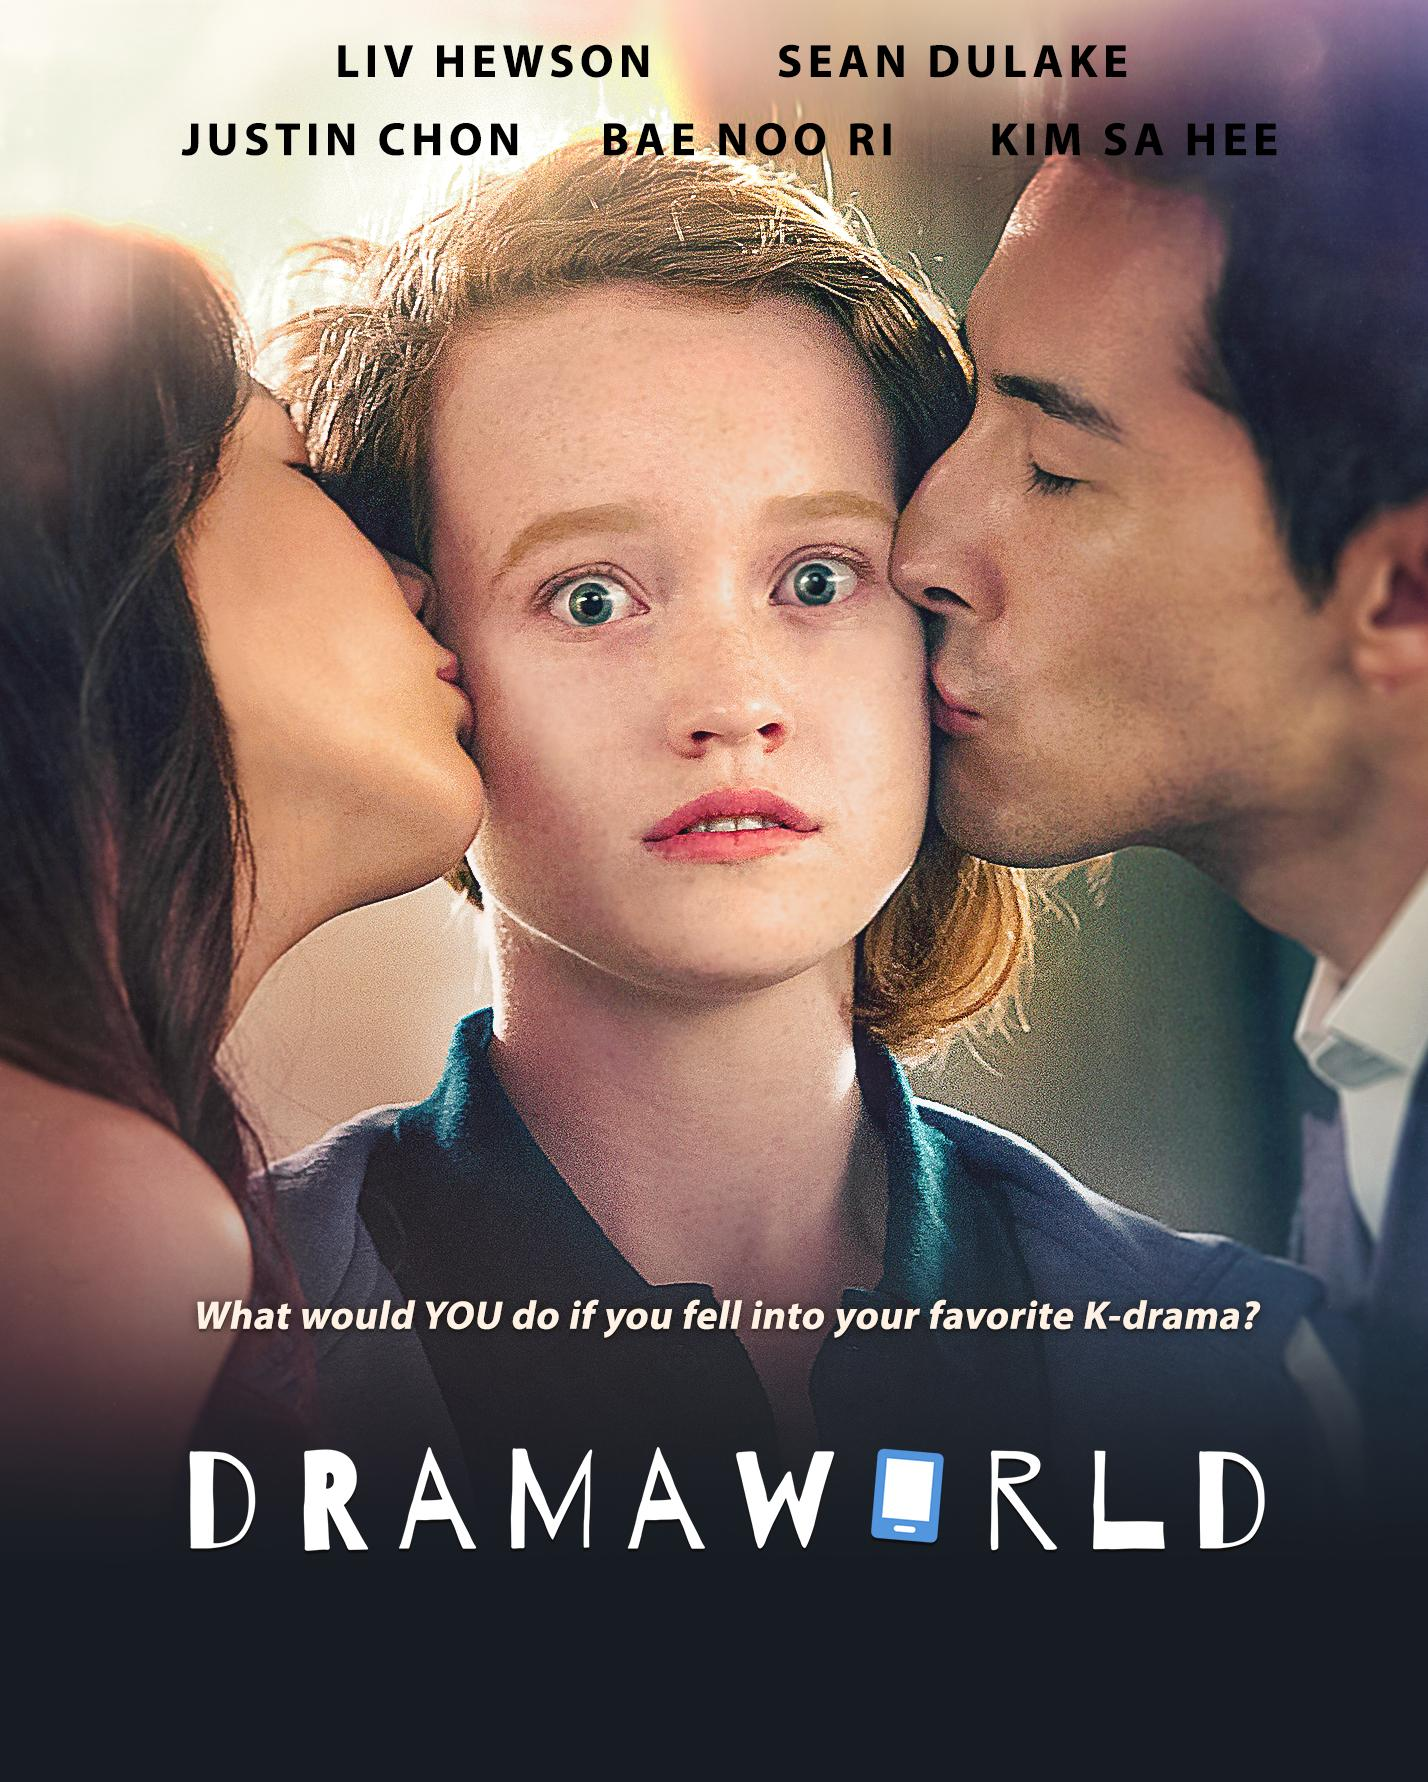 Liv Hewson(Claire) gets sucked into the Dramaworld